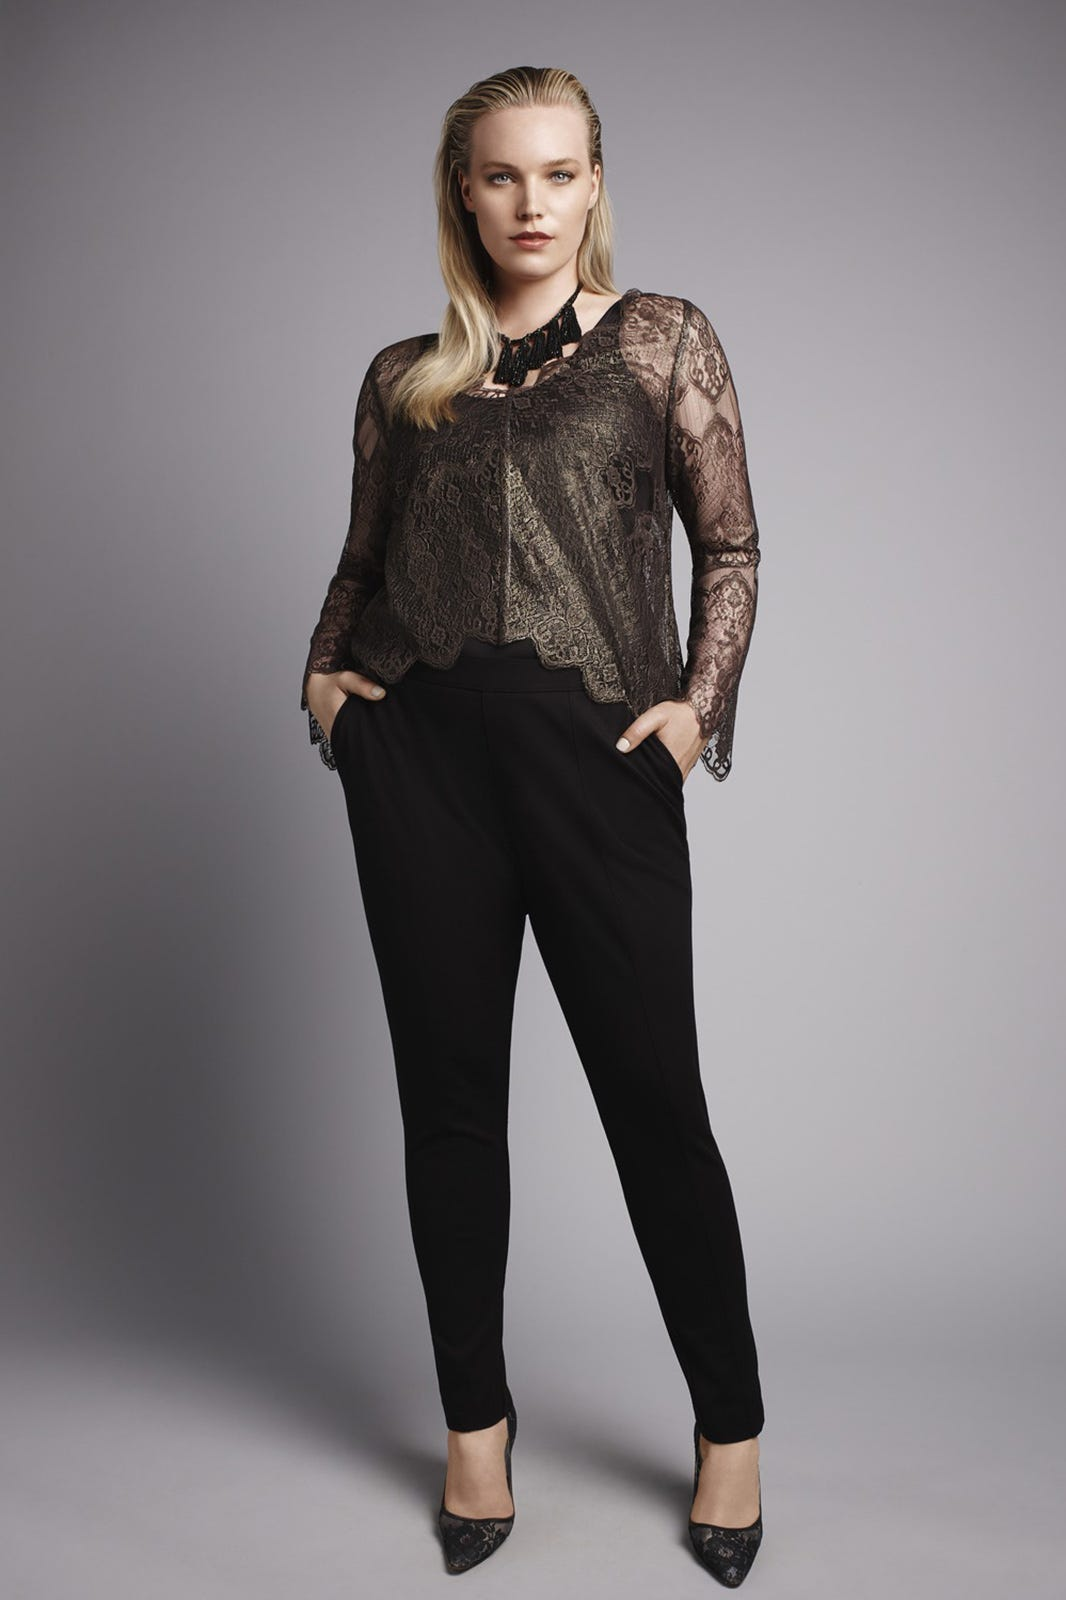 Lane Bryant Fall 2014 Lookbook